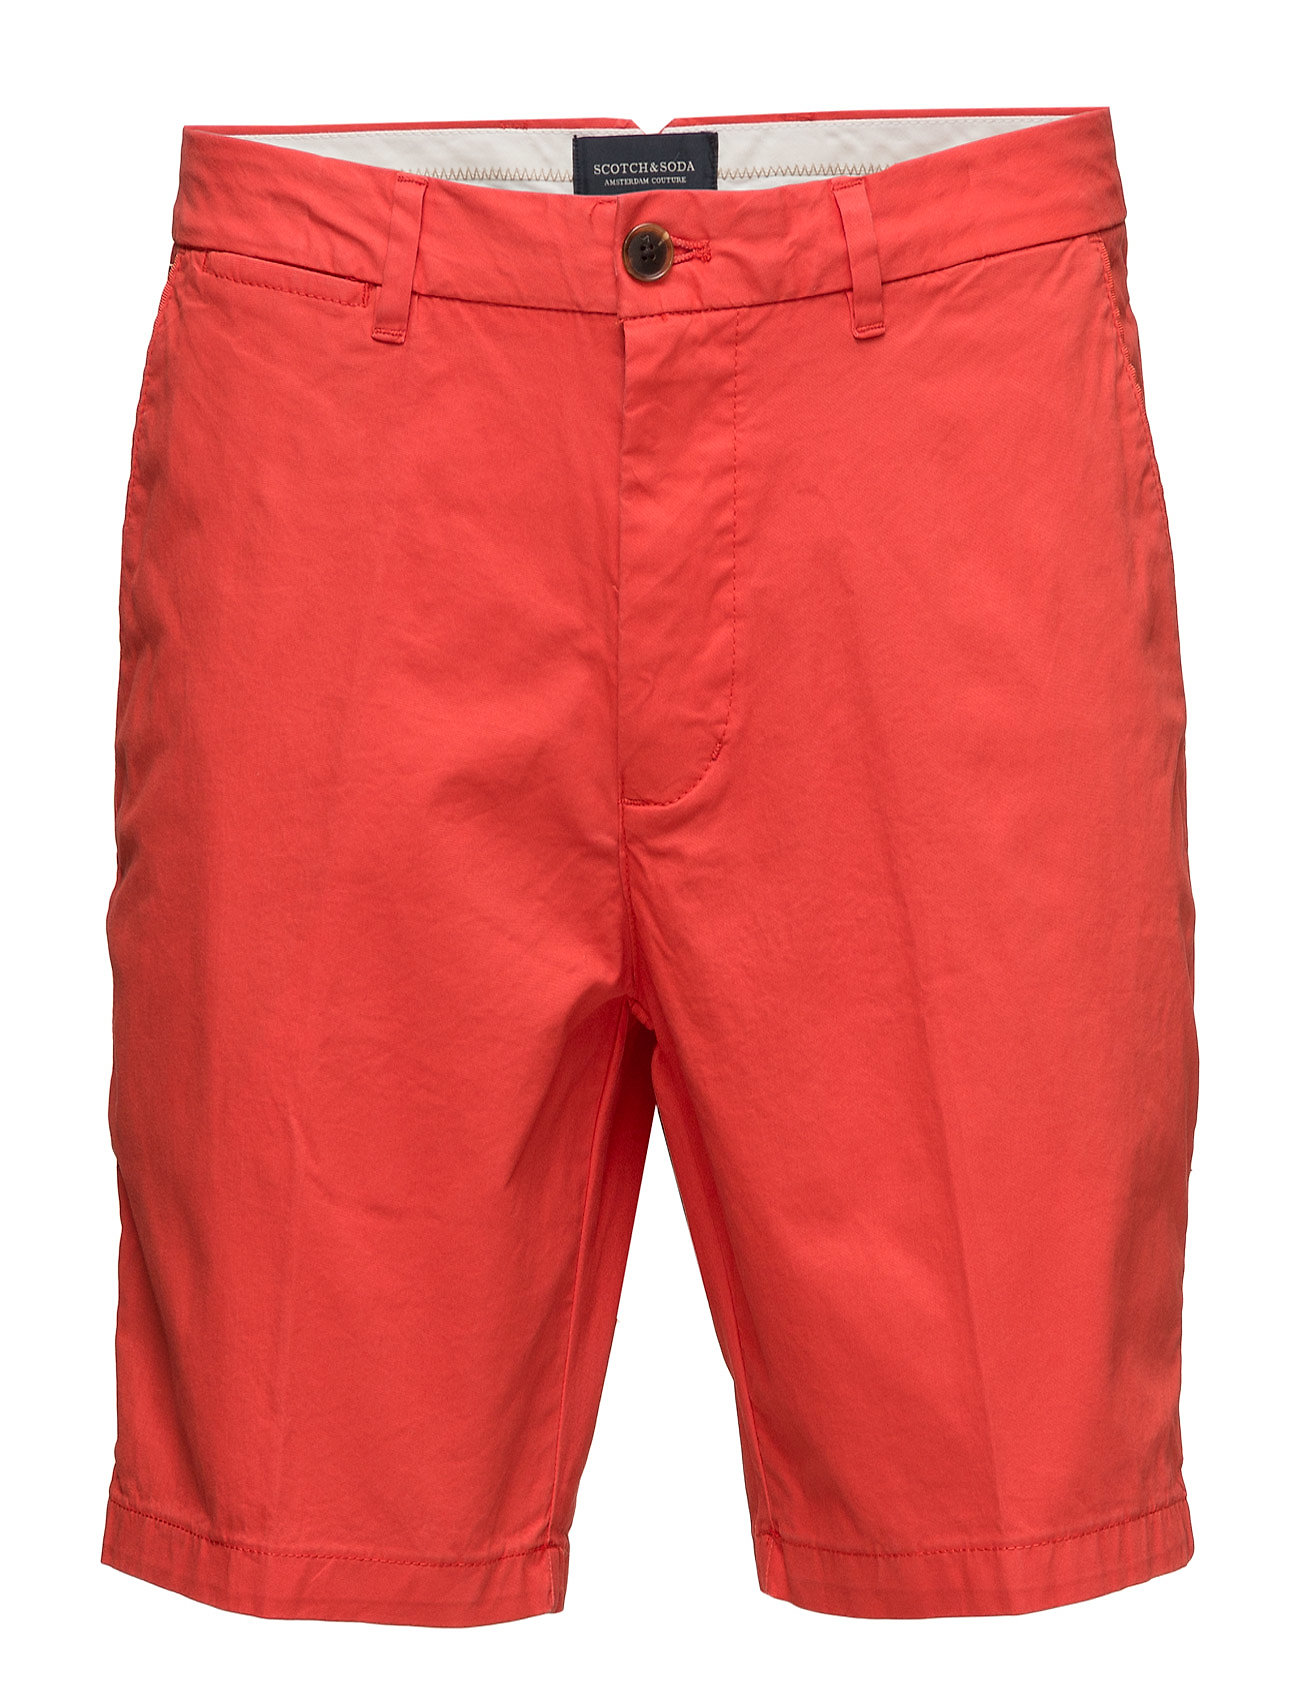 Classic Chino Short In Peached Cotton thumbnail